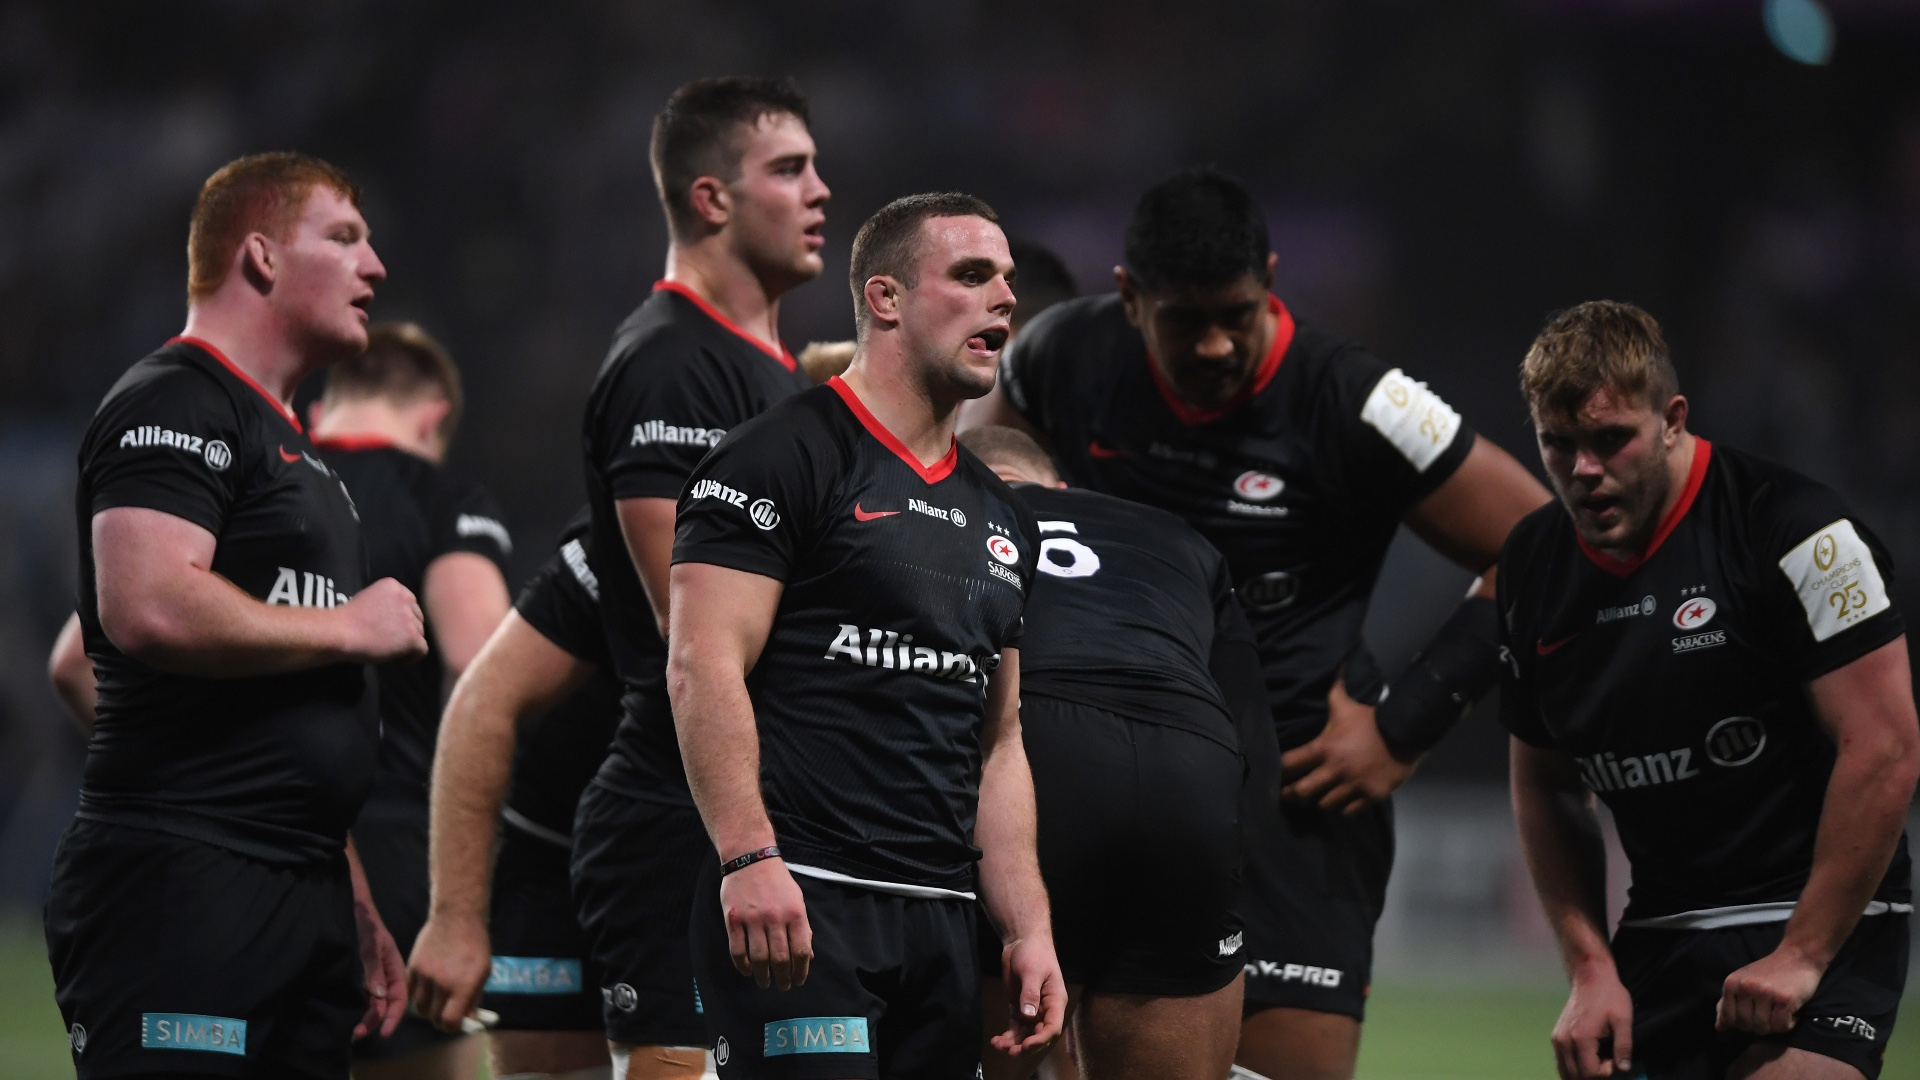 England rugby giants Saracens relegated from Premiership